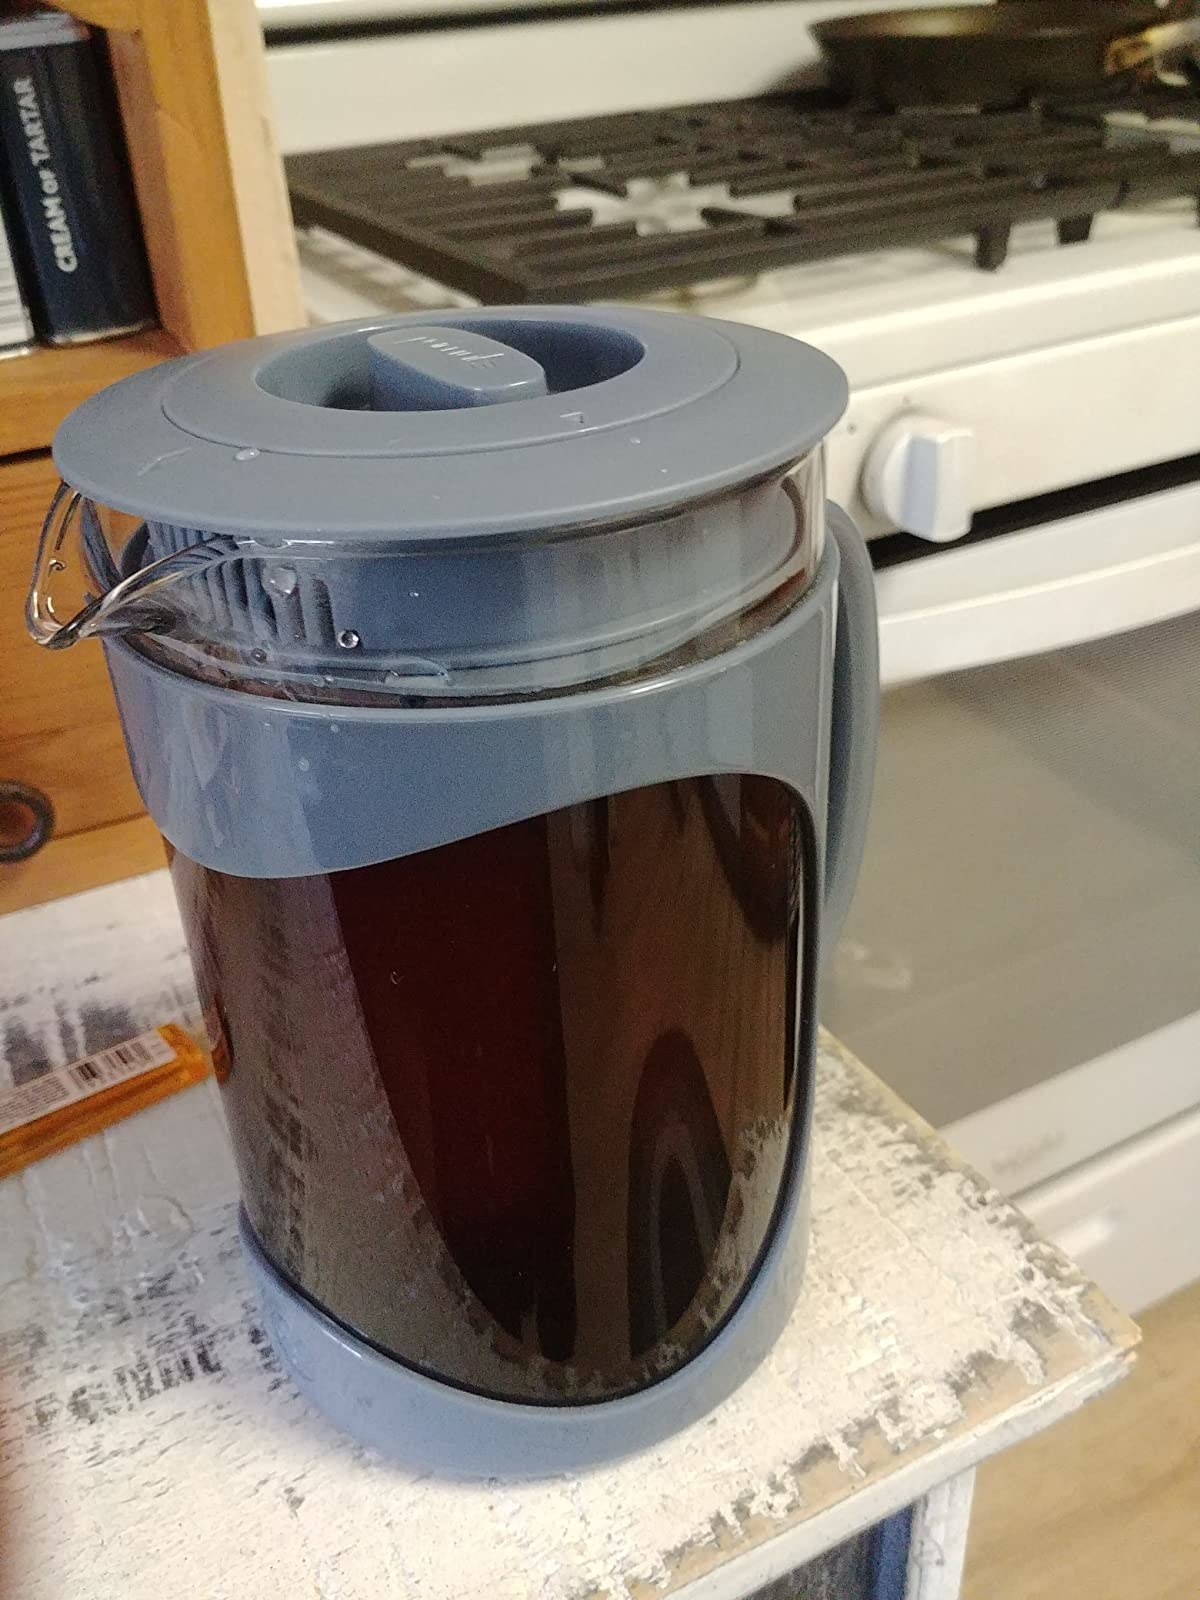 reviewer image of the blue primula cold brew maker full of cold brew